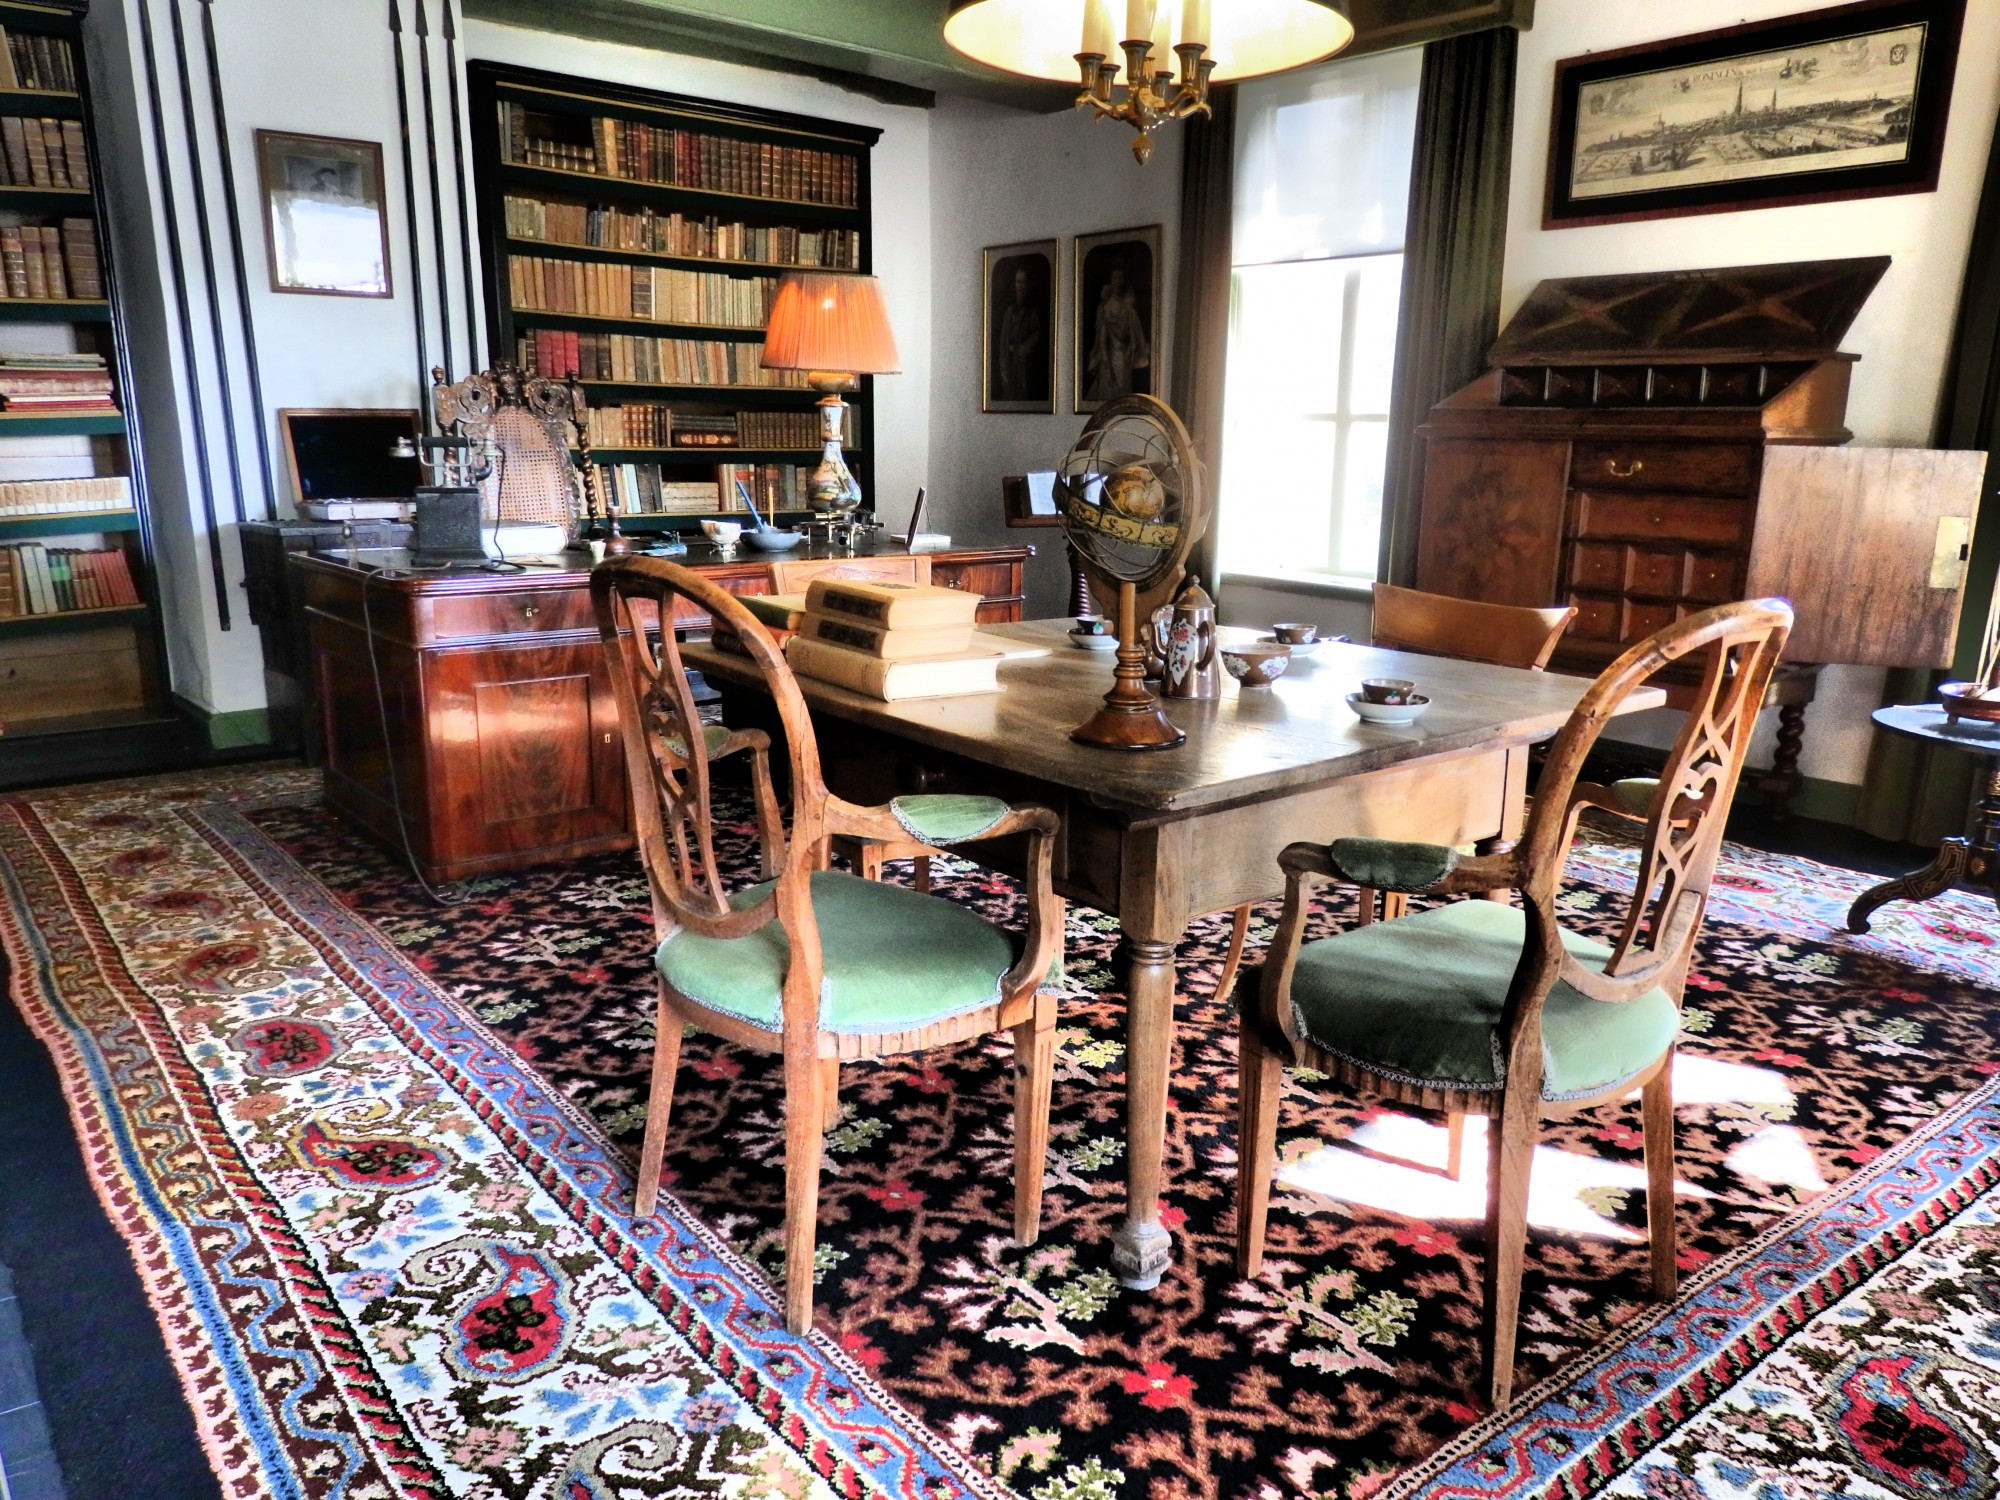 The library at Fraeylemaborg, in Slochteren, the Netherlands